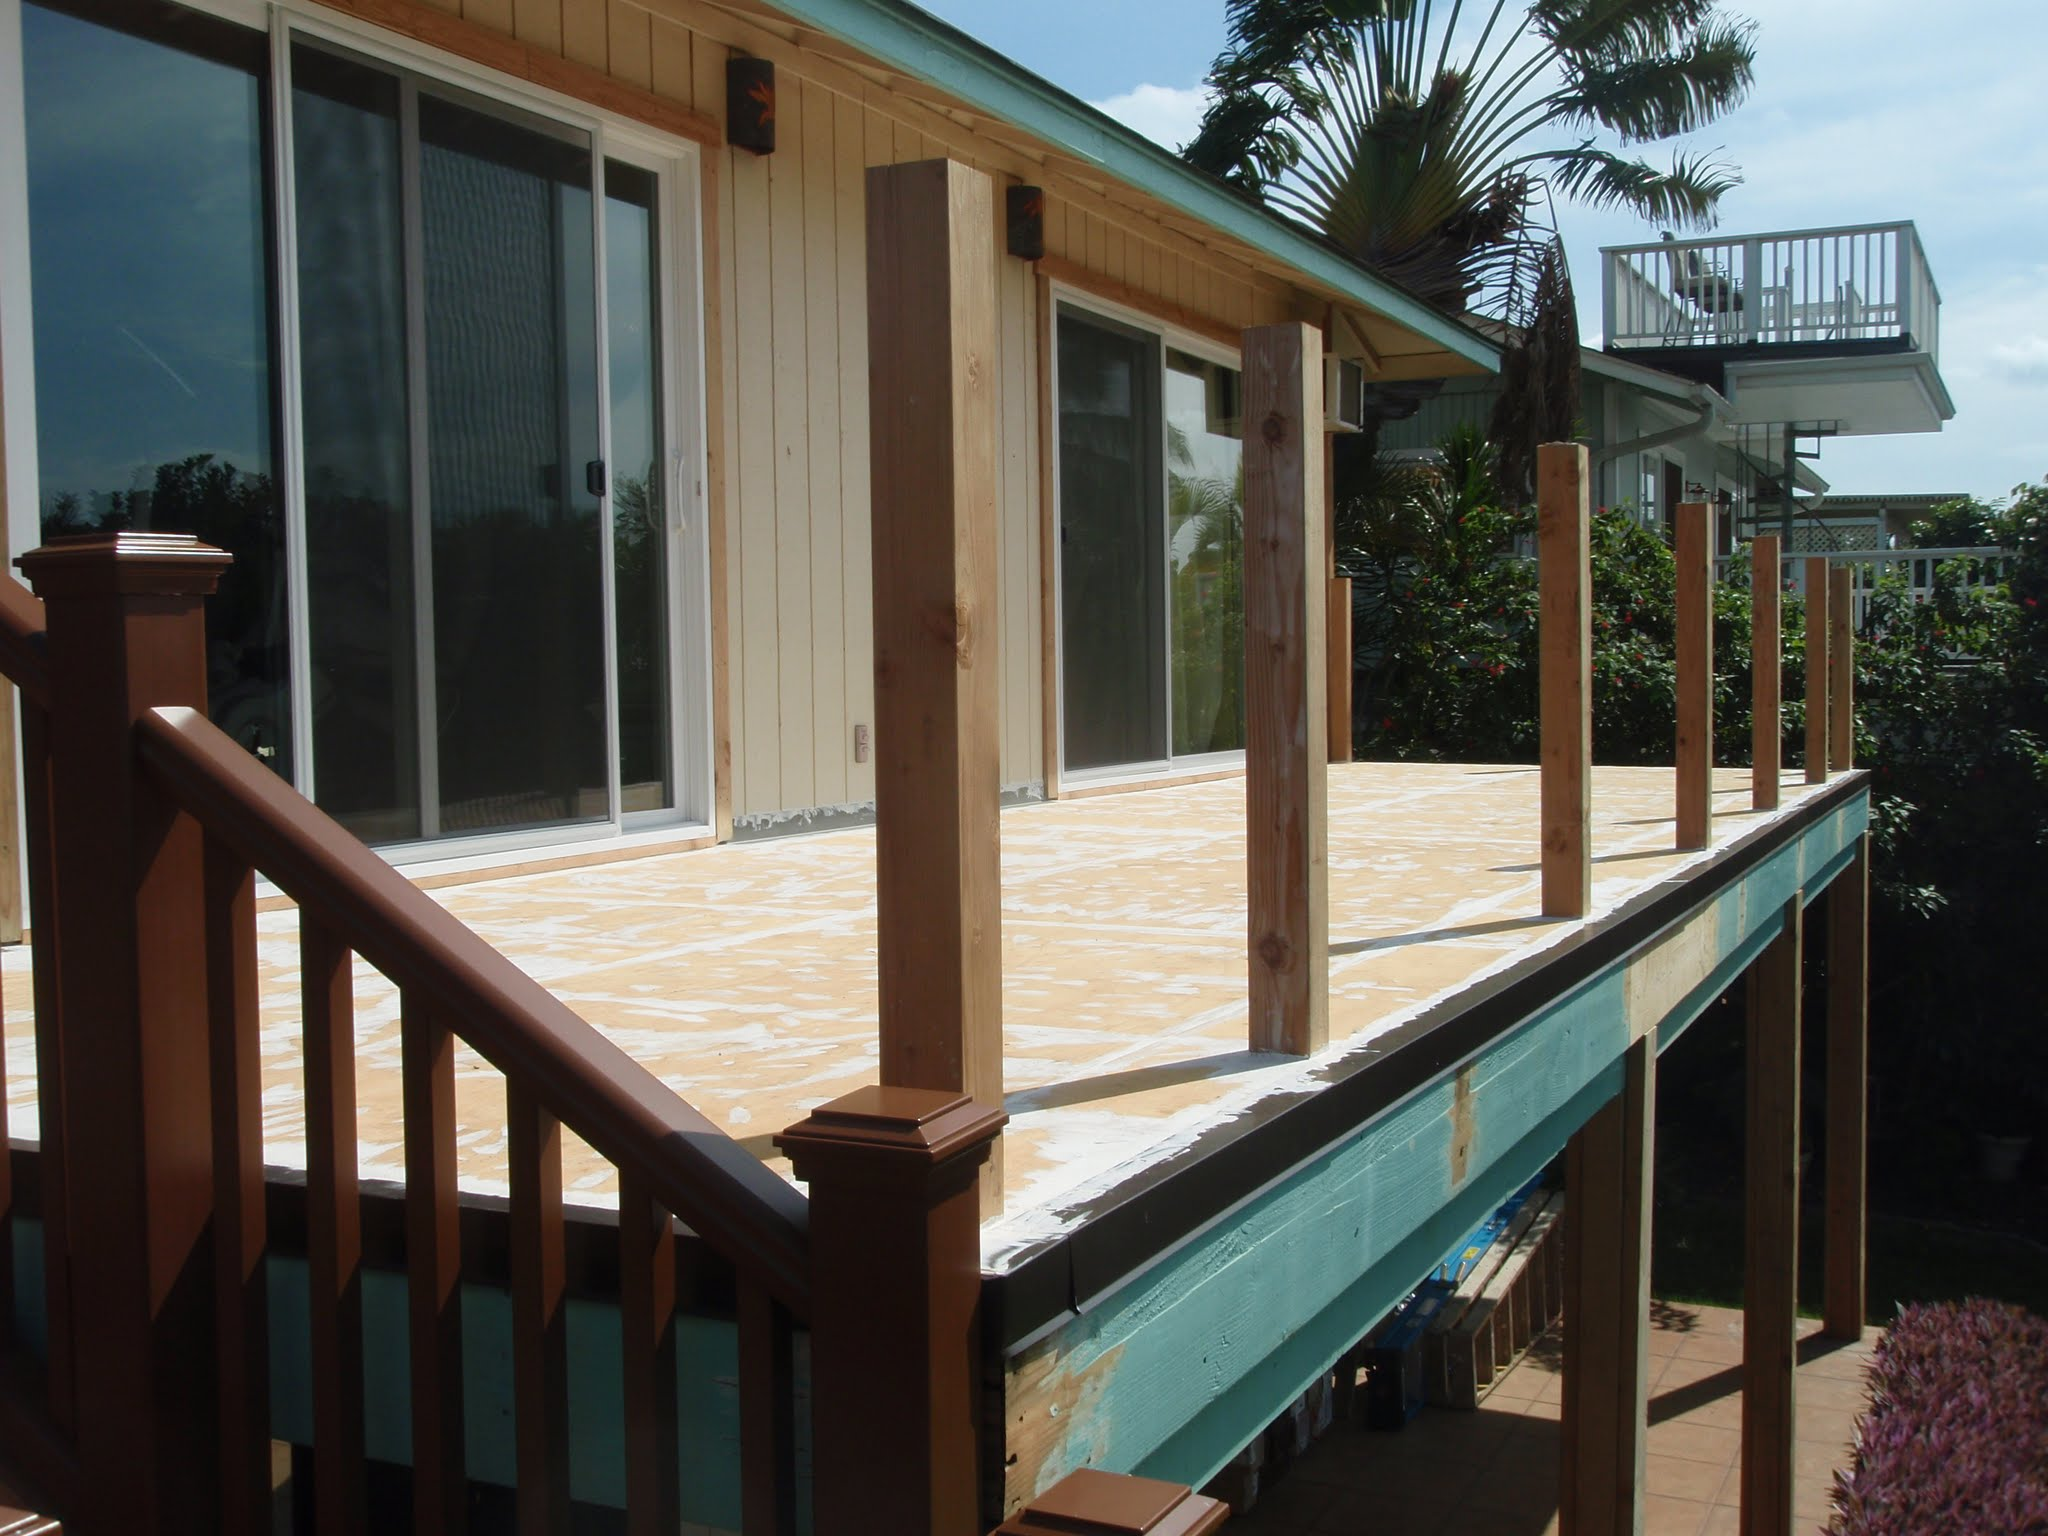 Ply wood decking is flashed, patched & sealed ready for the first Elastomeric coating